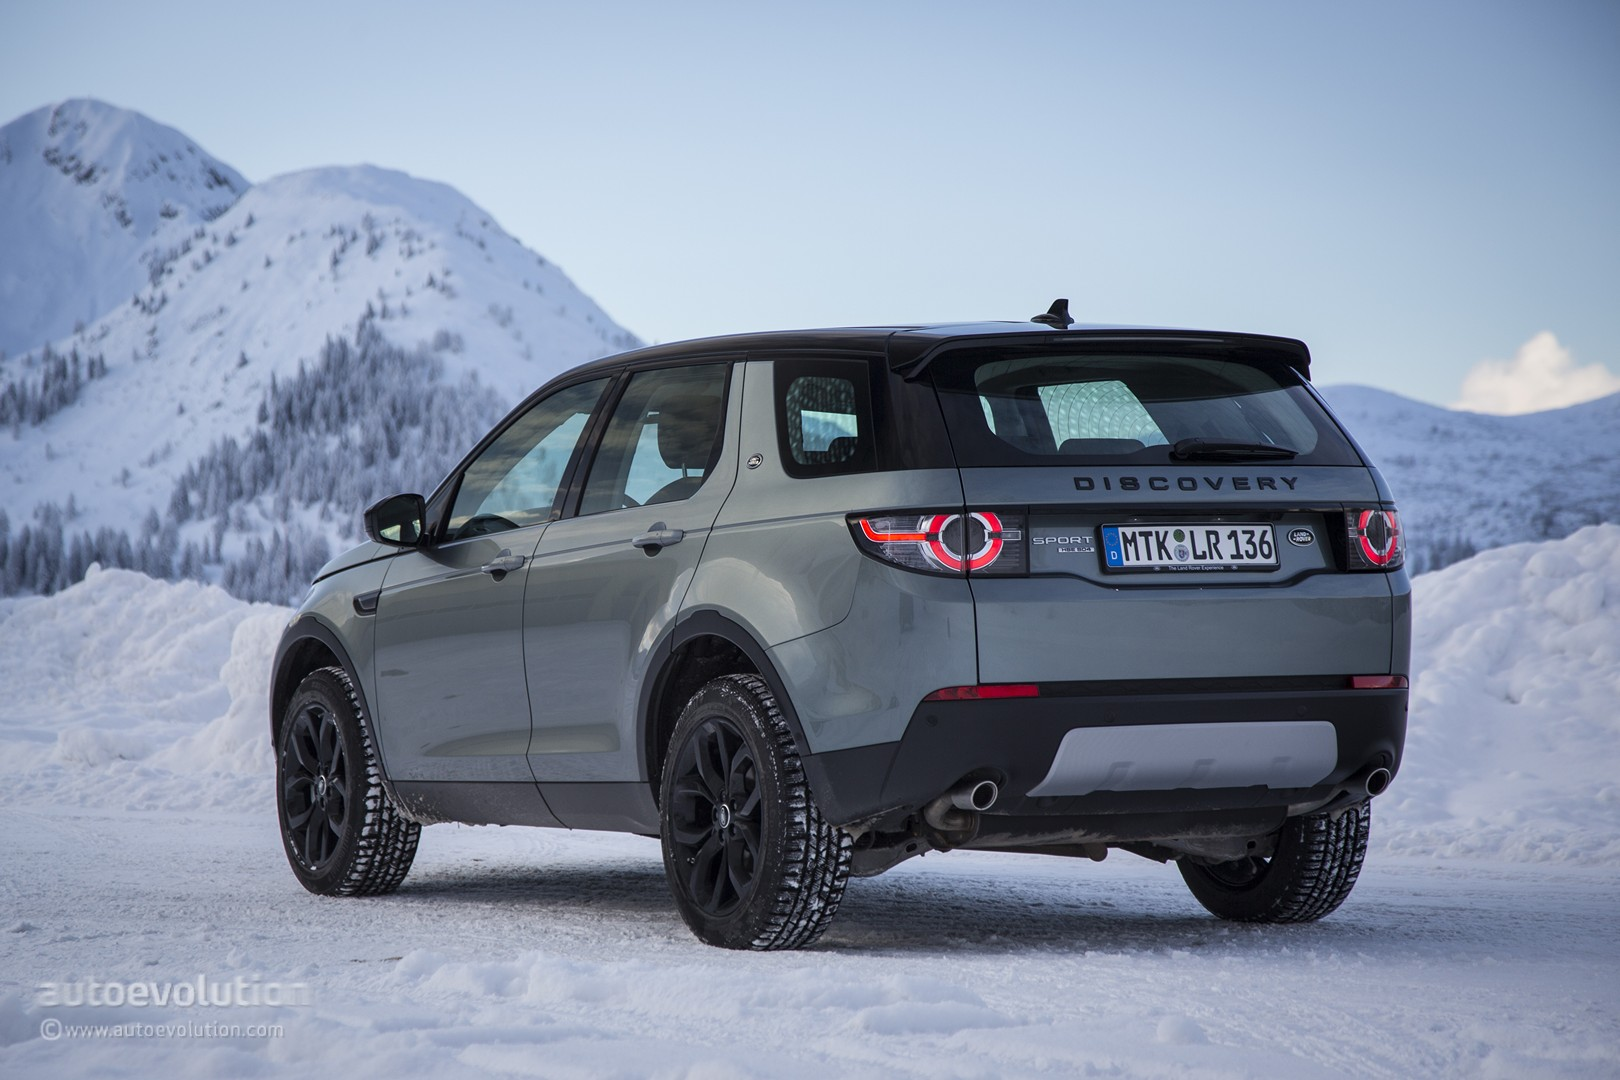 Difference Between Land Rover And Range Rover >> 2015 Land Rover Discovery Sport Review - autoevolution